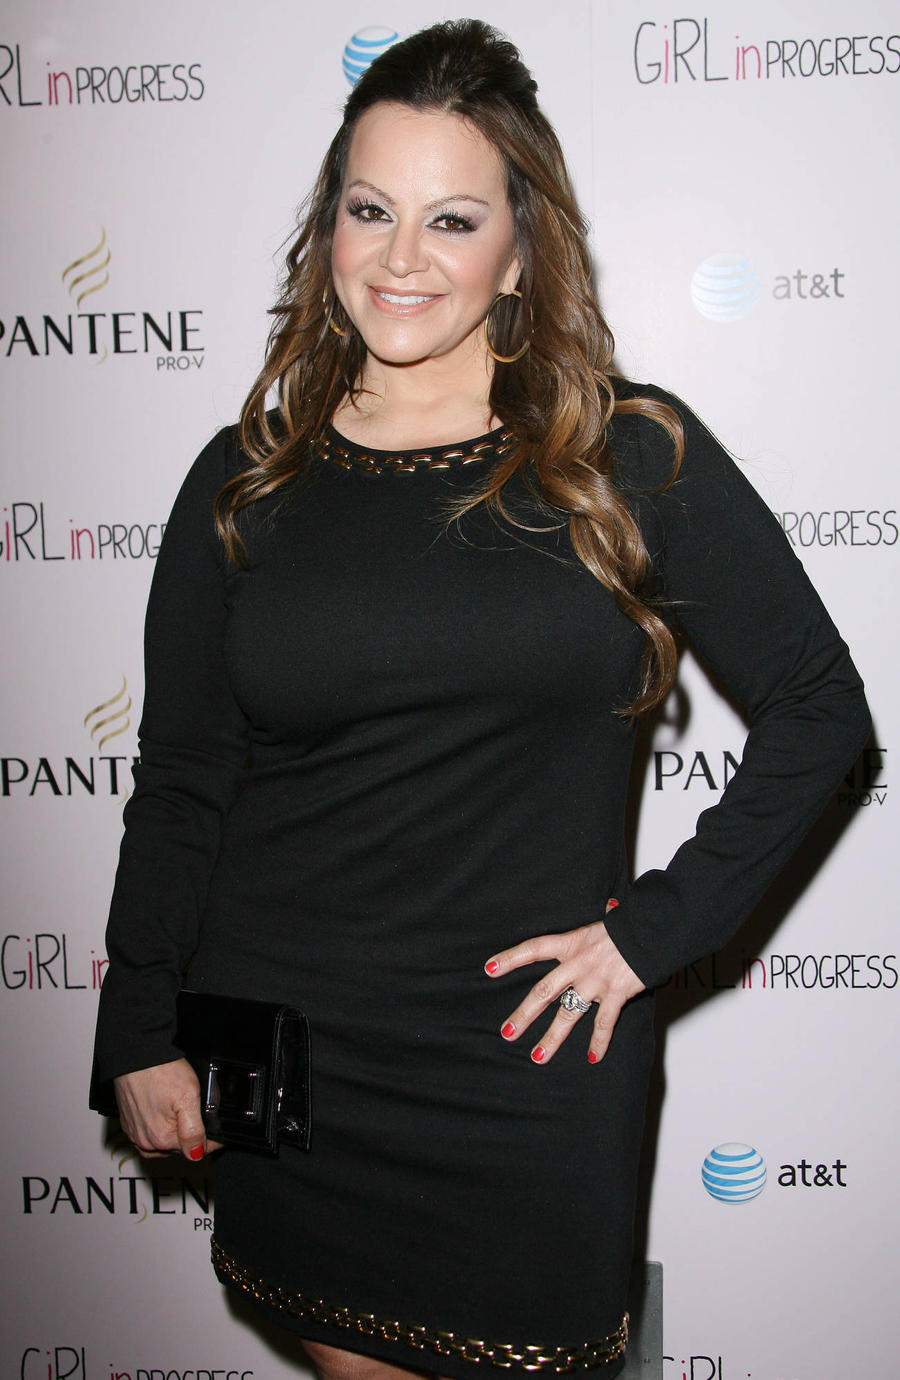 Jenni Rivera's Family Returning To Reality Tv